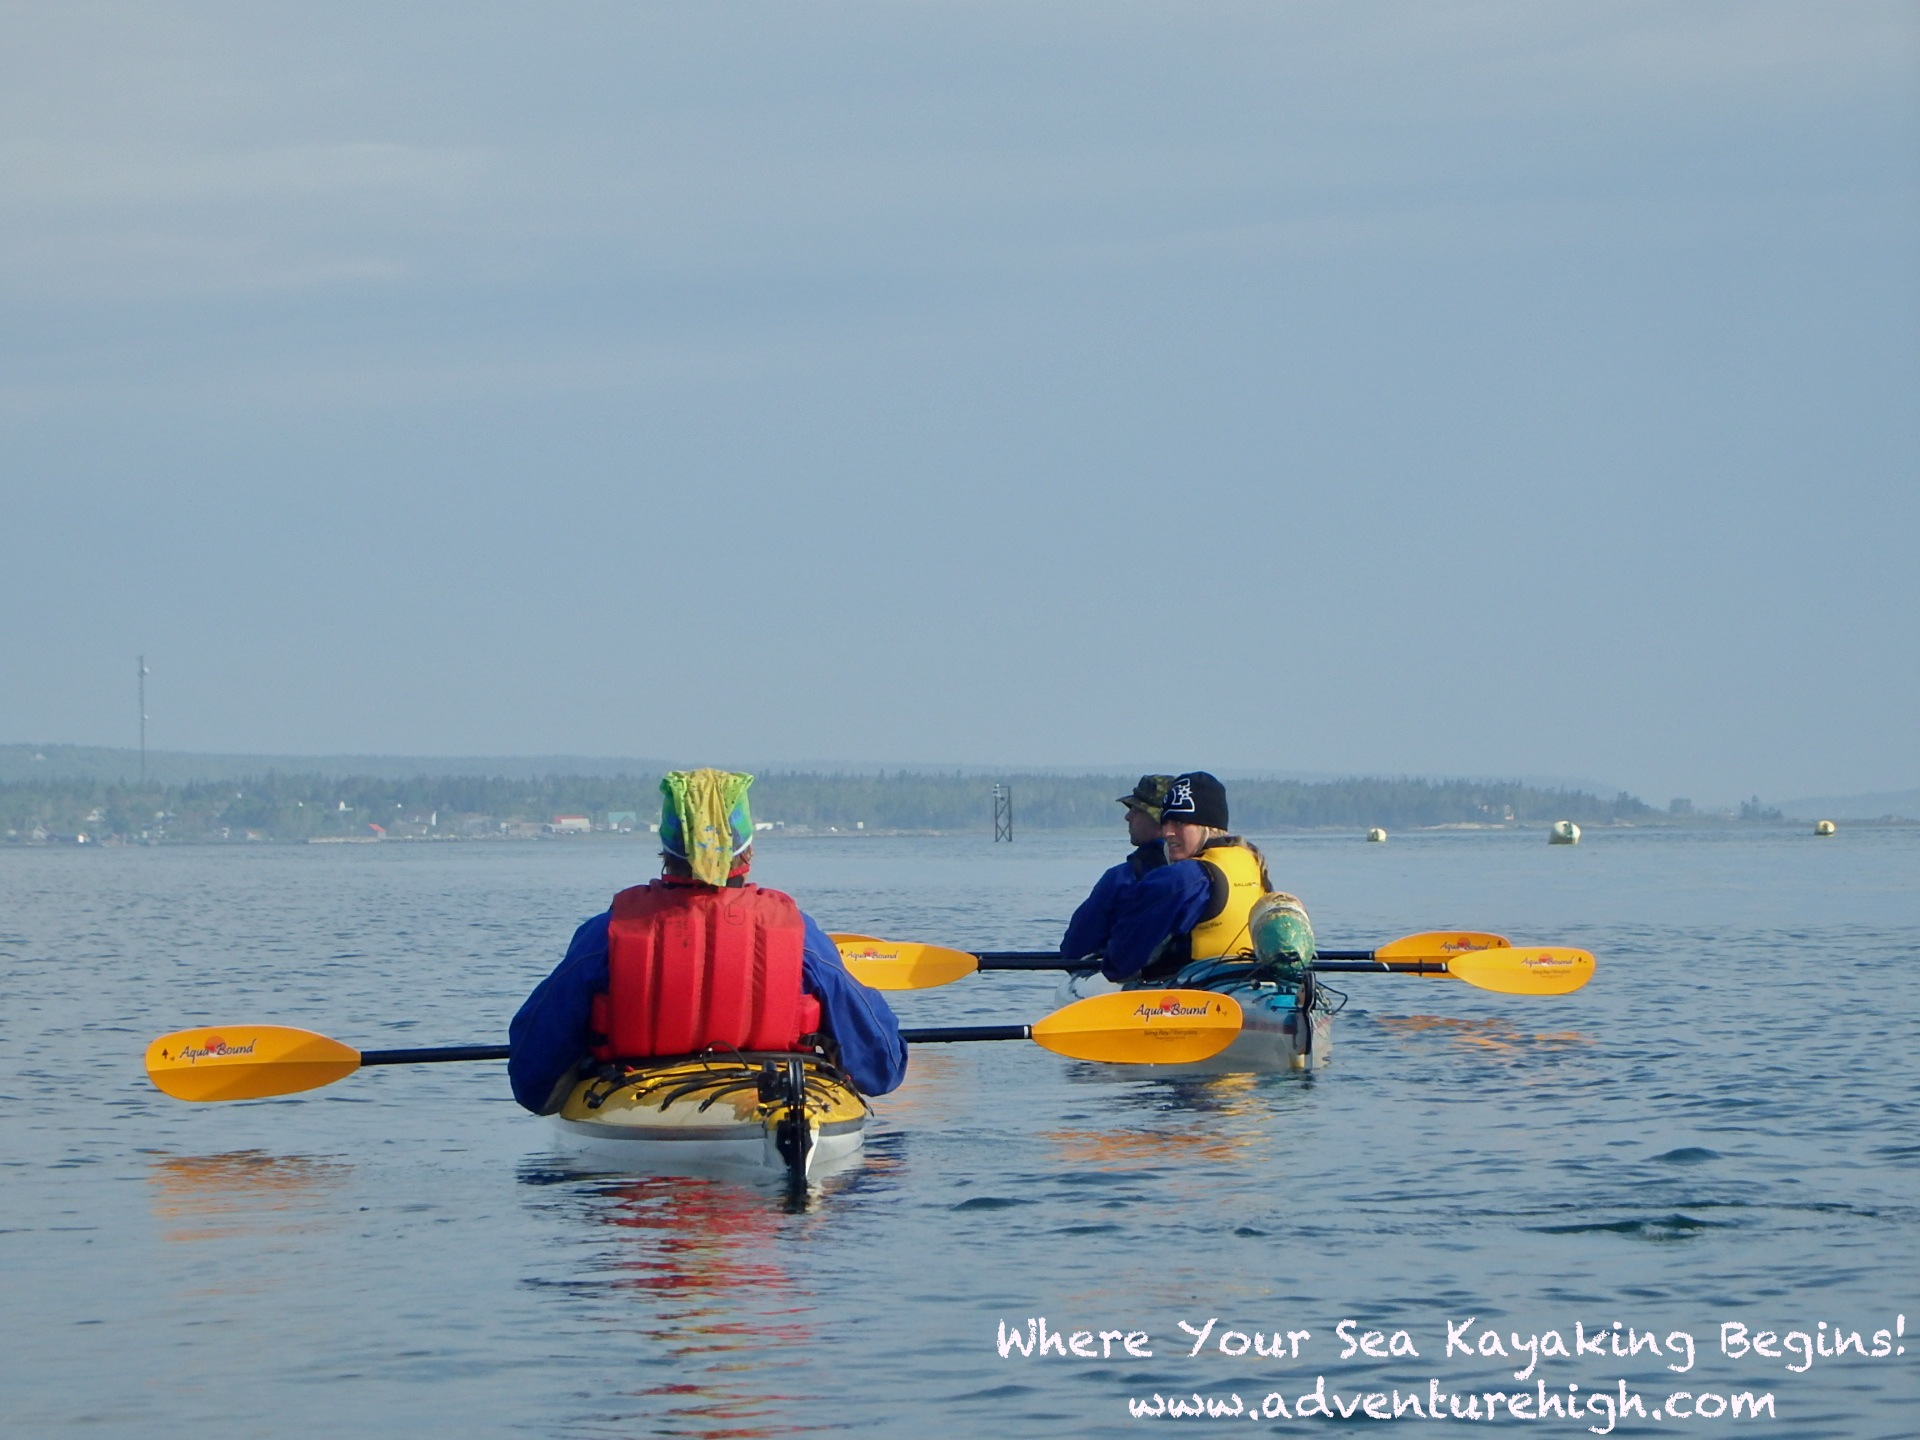 Seakayaking OutwardBound enjoy